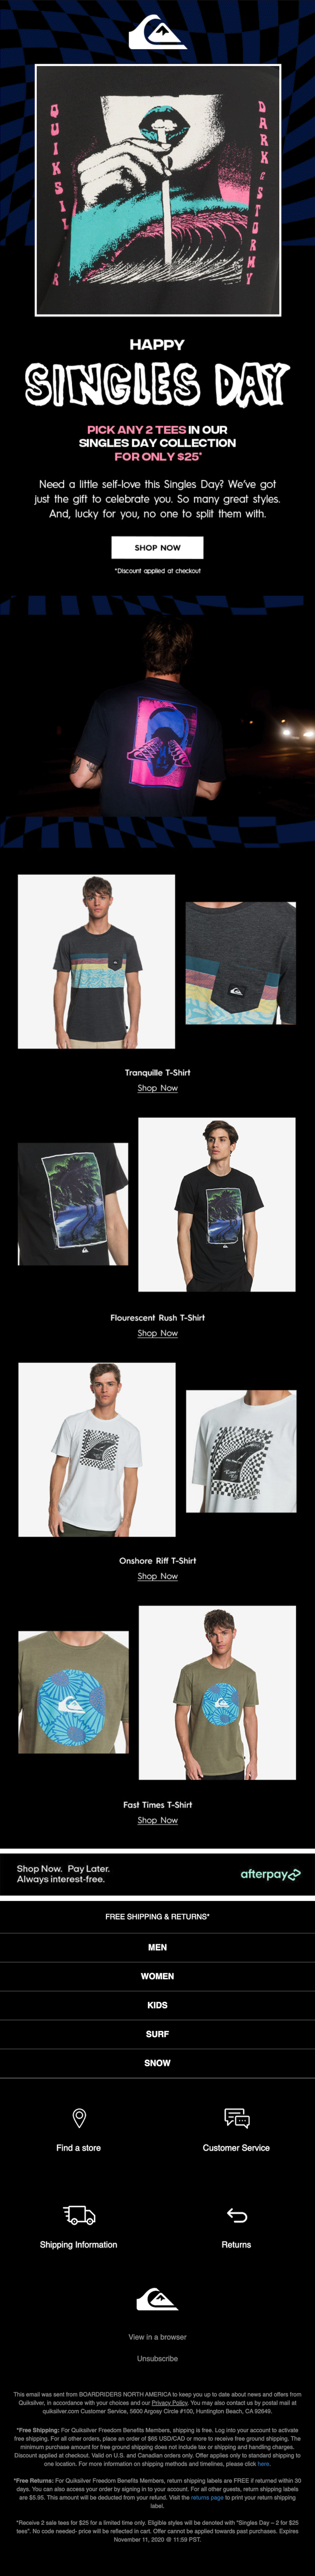 quiksilver singles day email